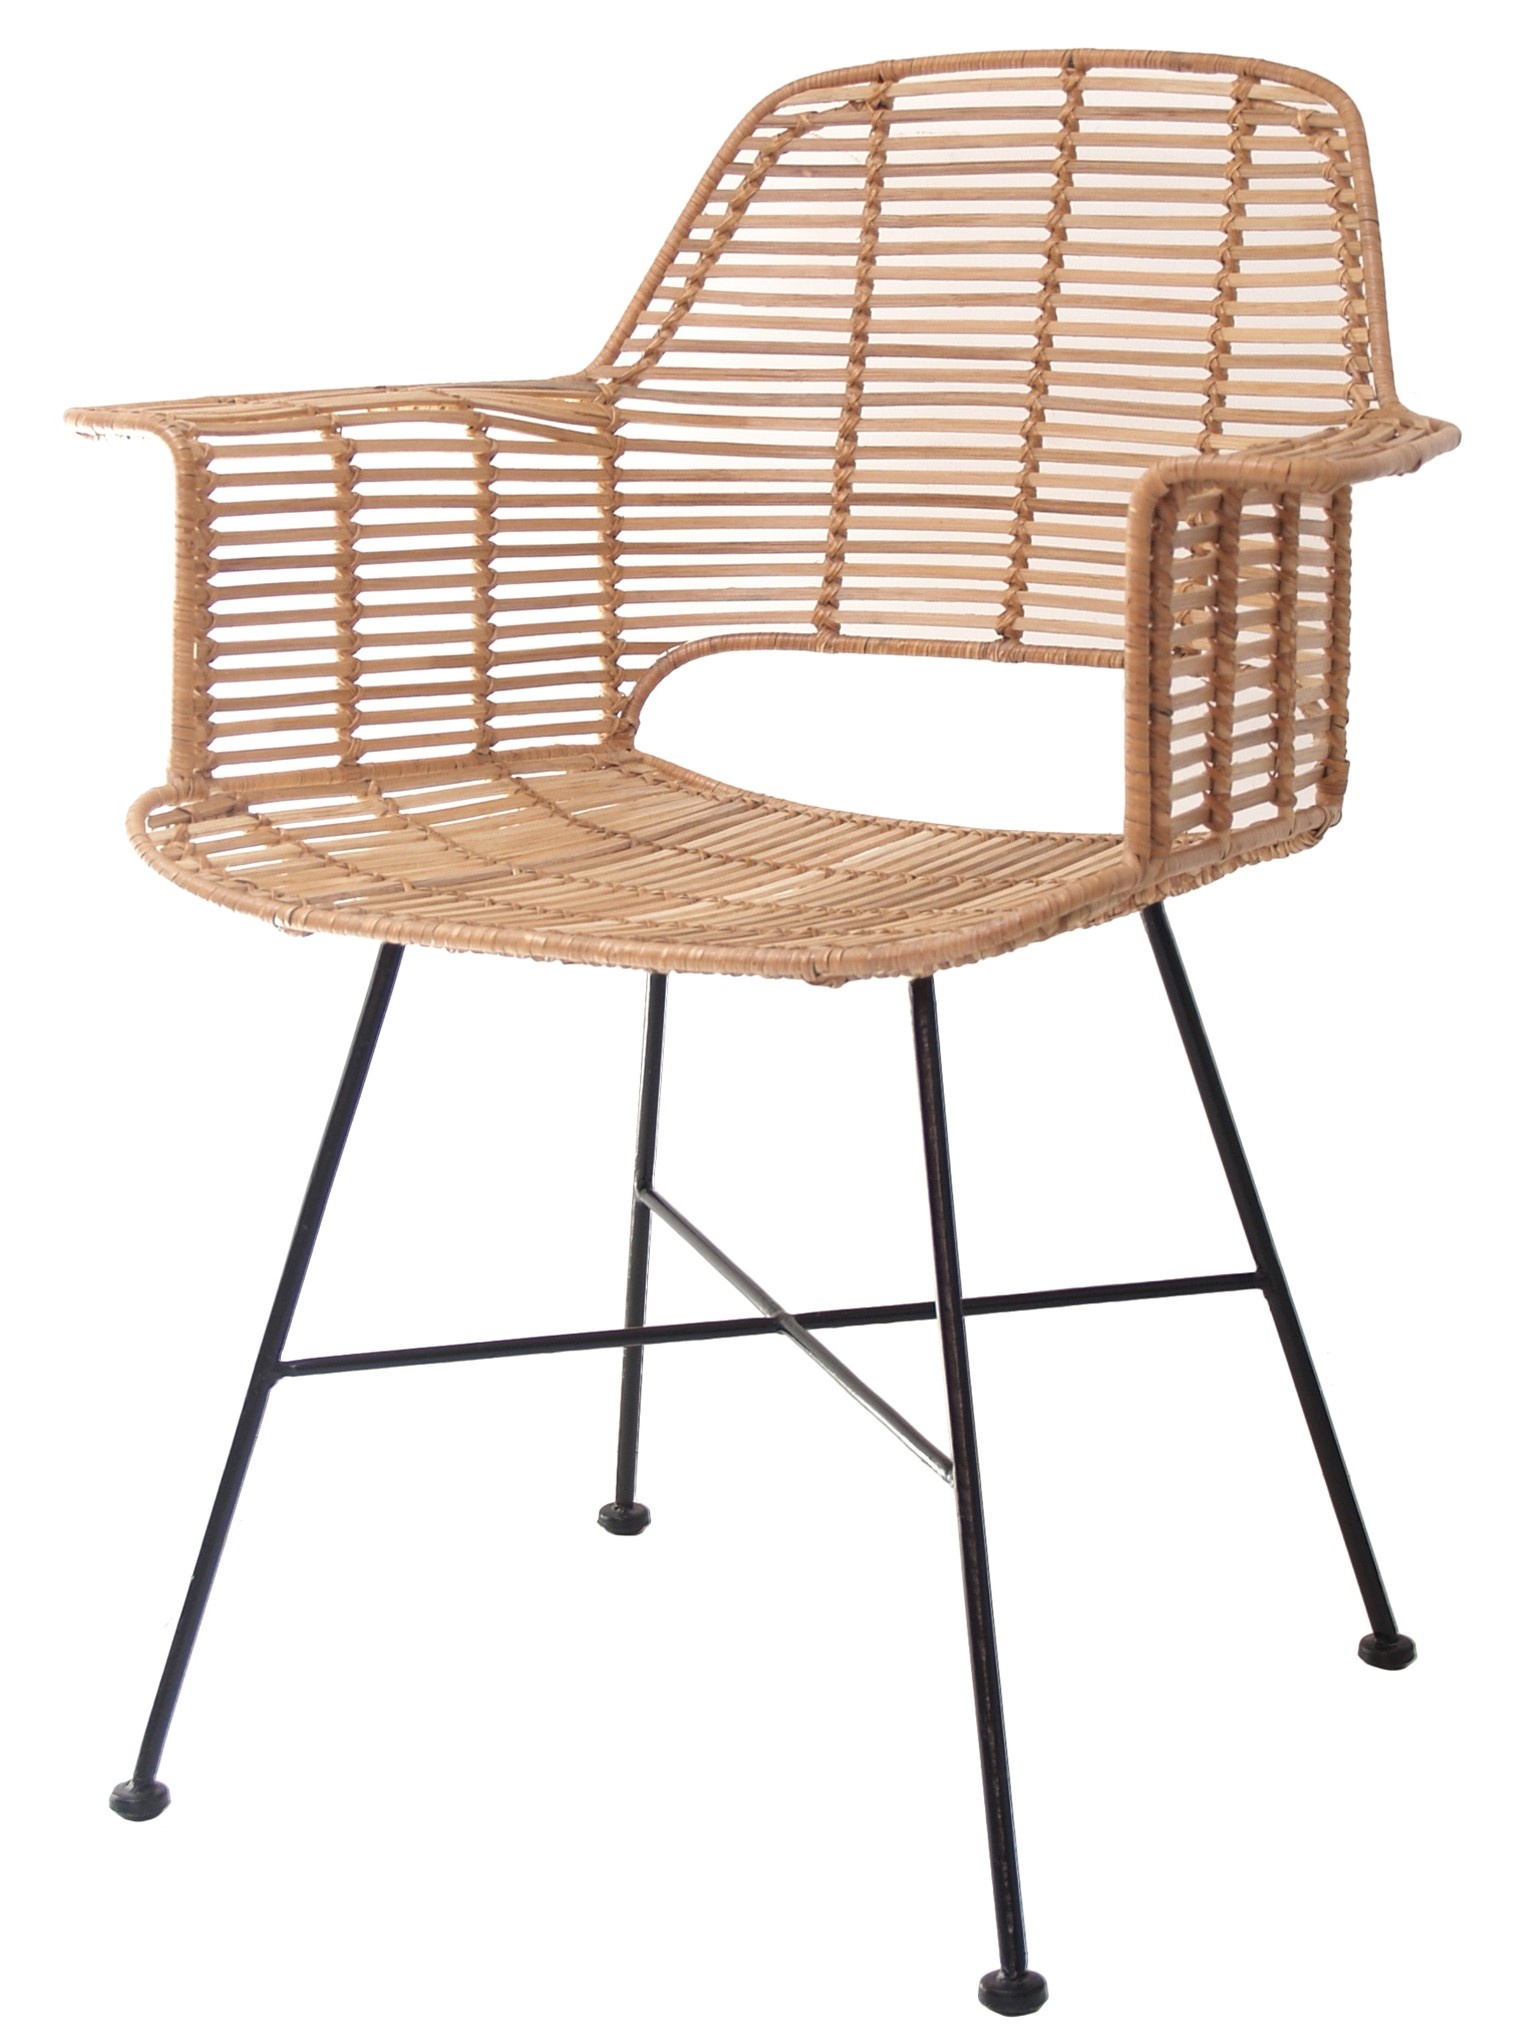 Stoel rattan tub chair 67x55x83cm Natural-3